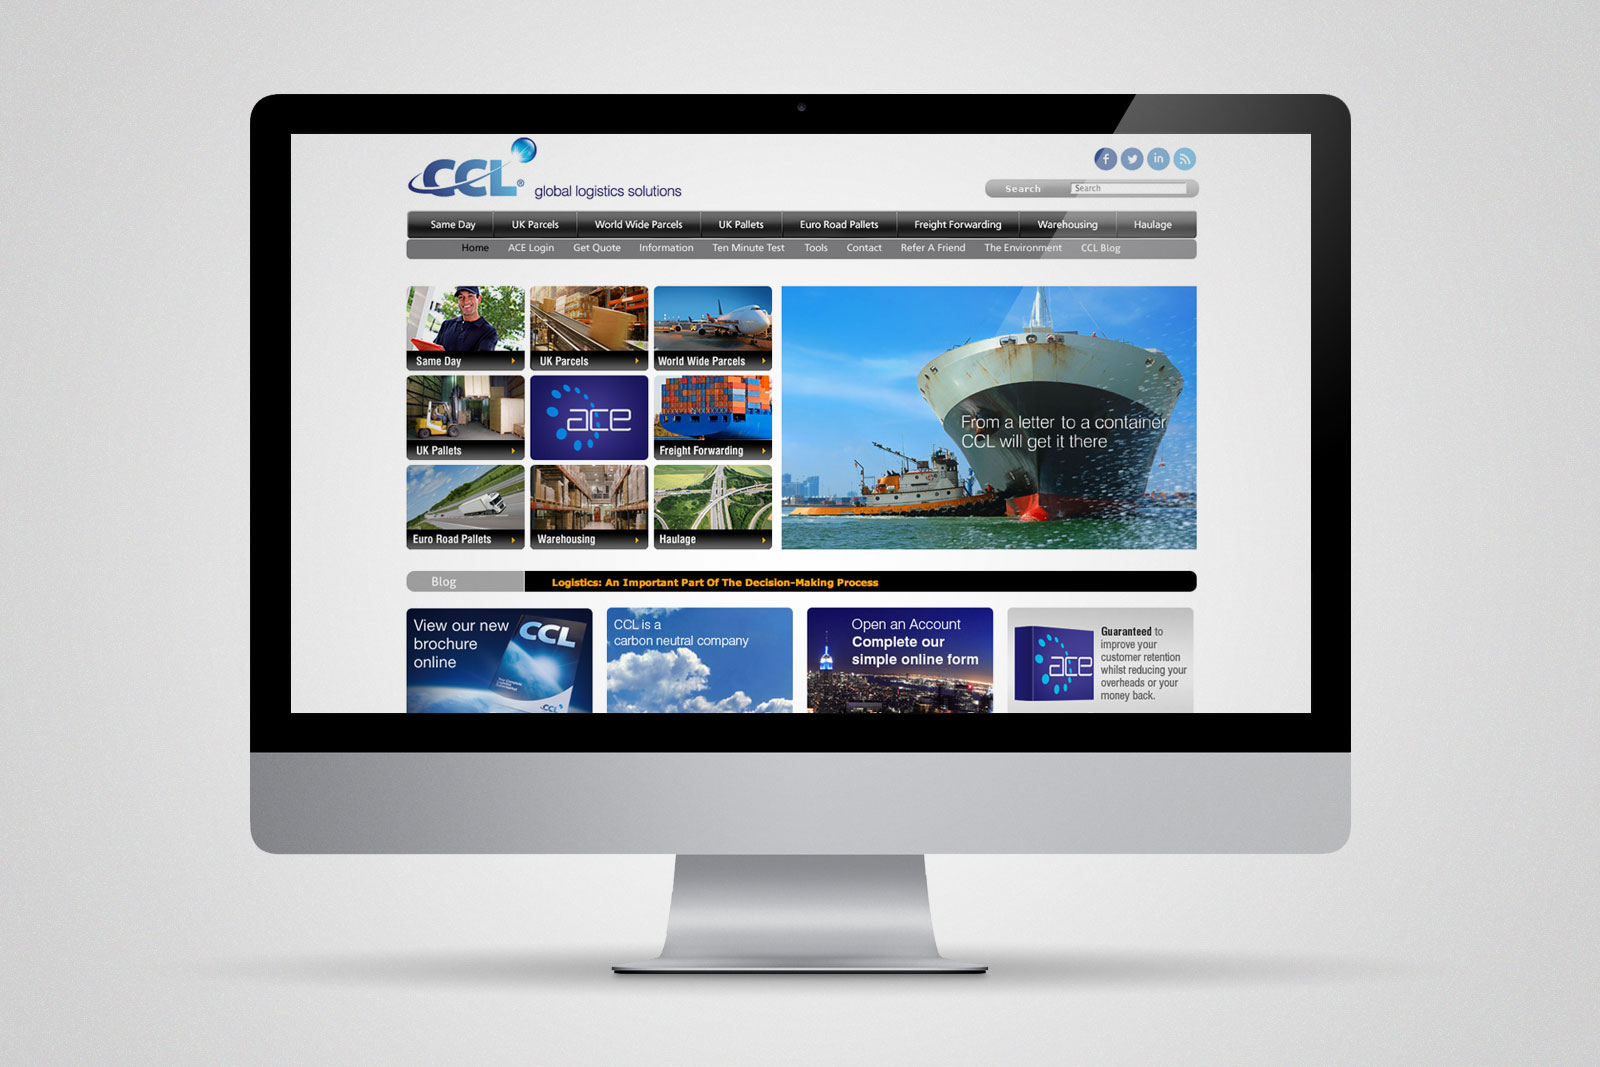 CCL_Home_Page.jpg